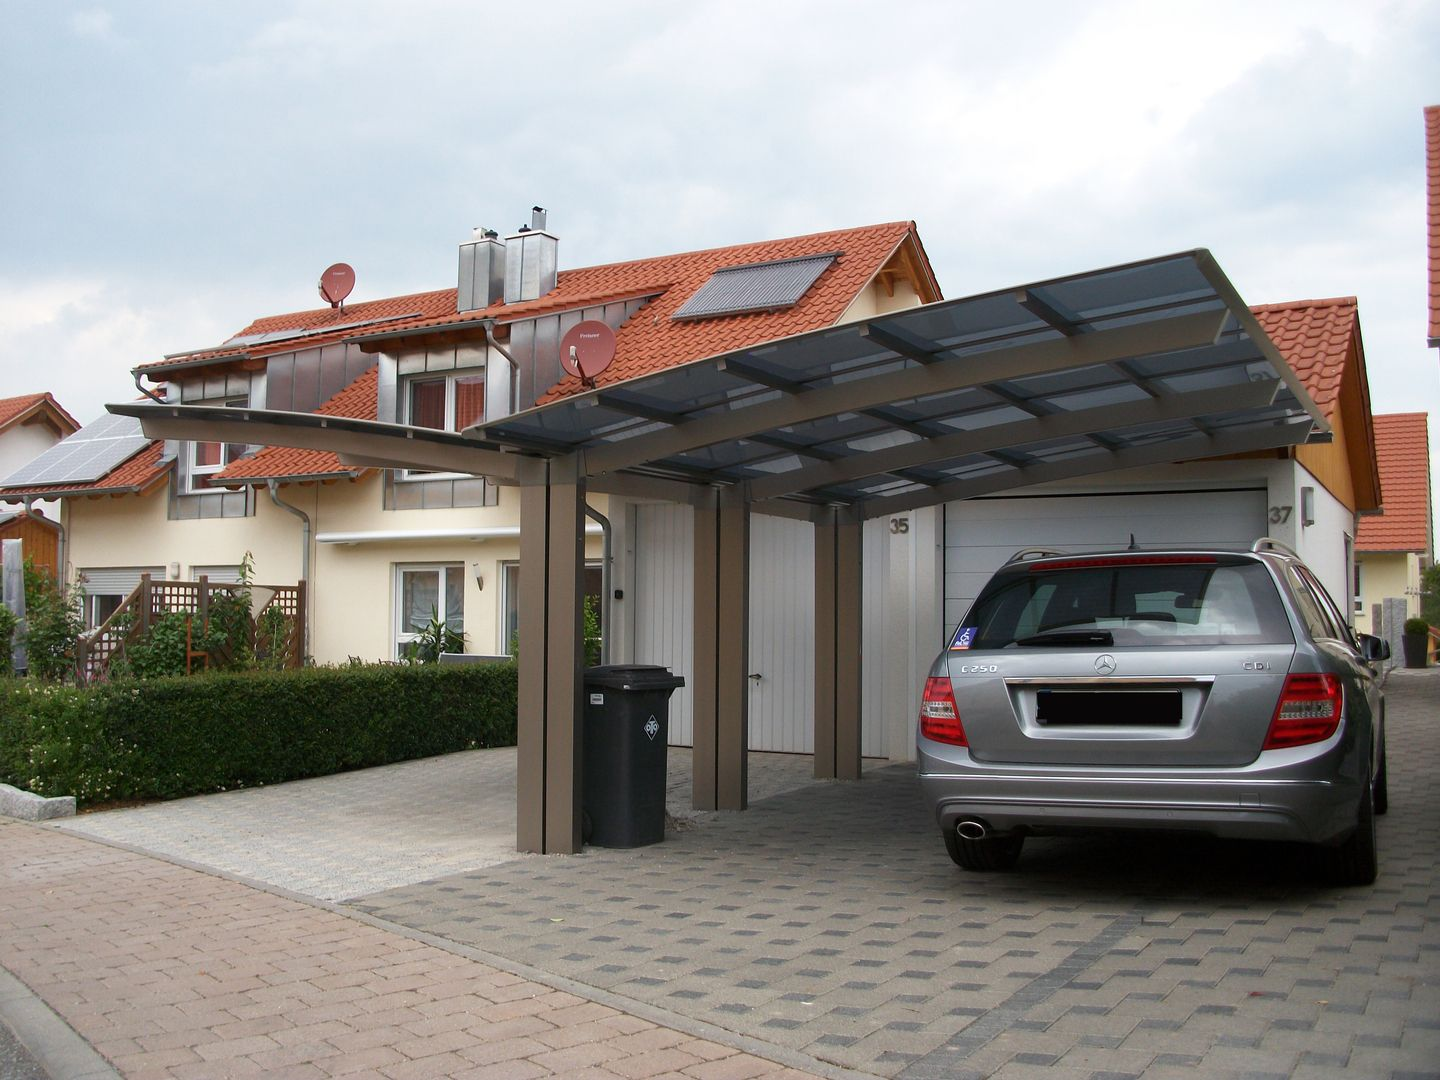 Premium Quality Modern Carports Awnings For Residential Commercial Applications Our Innovative Products Modern Carport Carport Designs Cantilever Carport